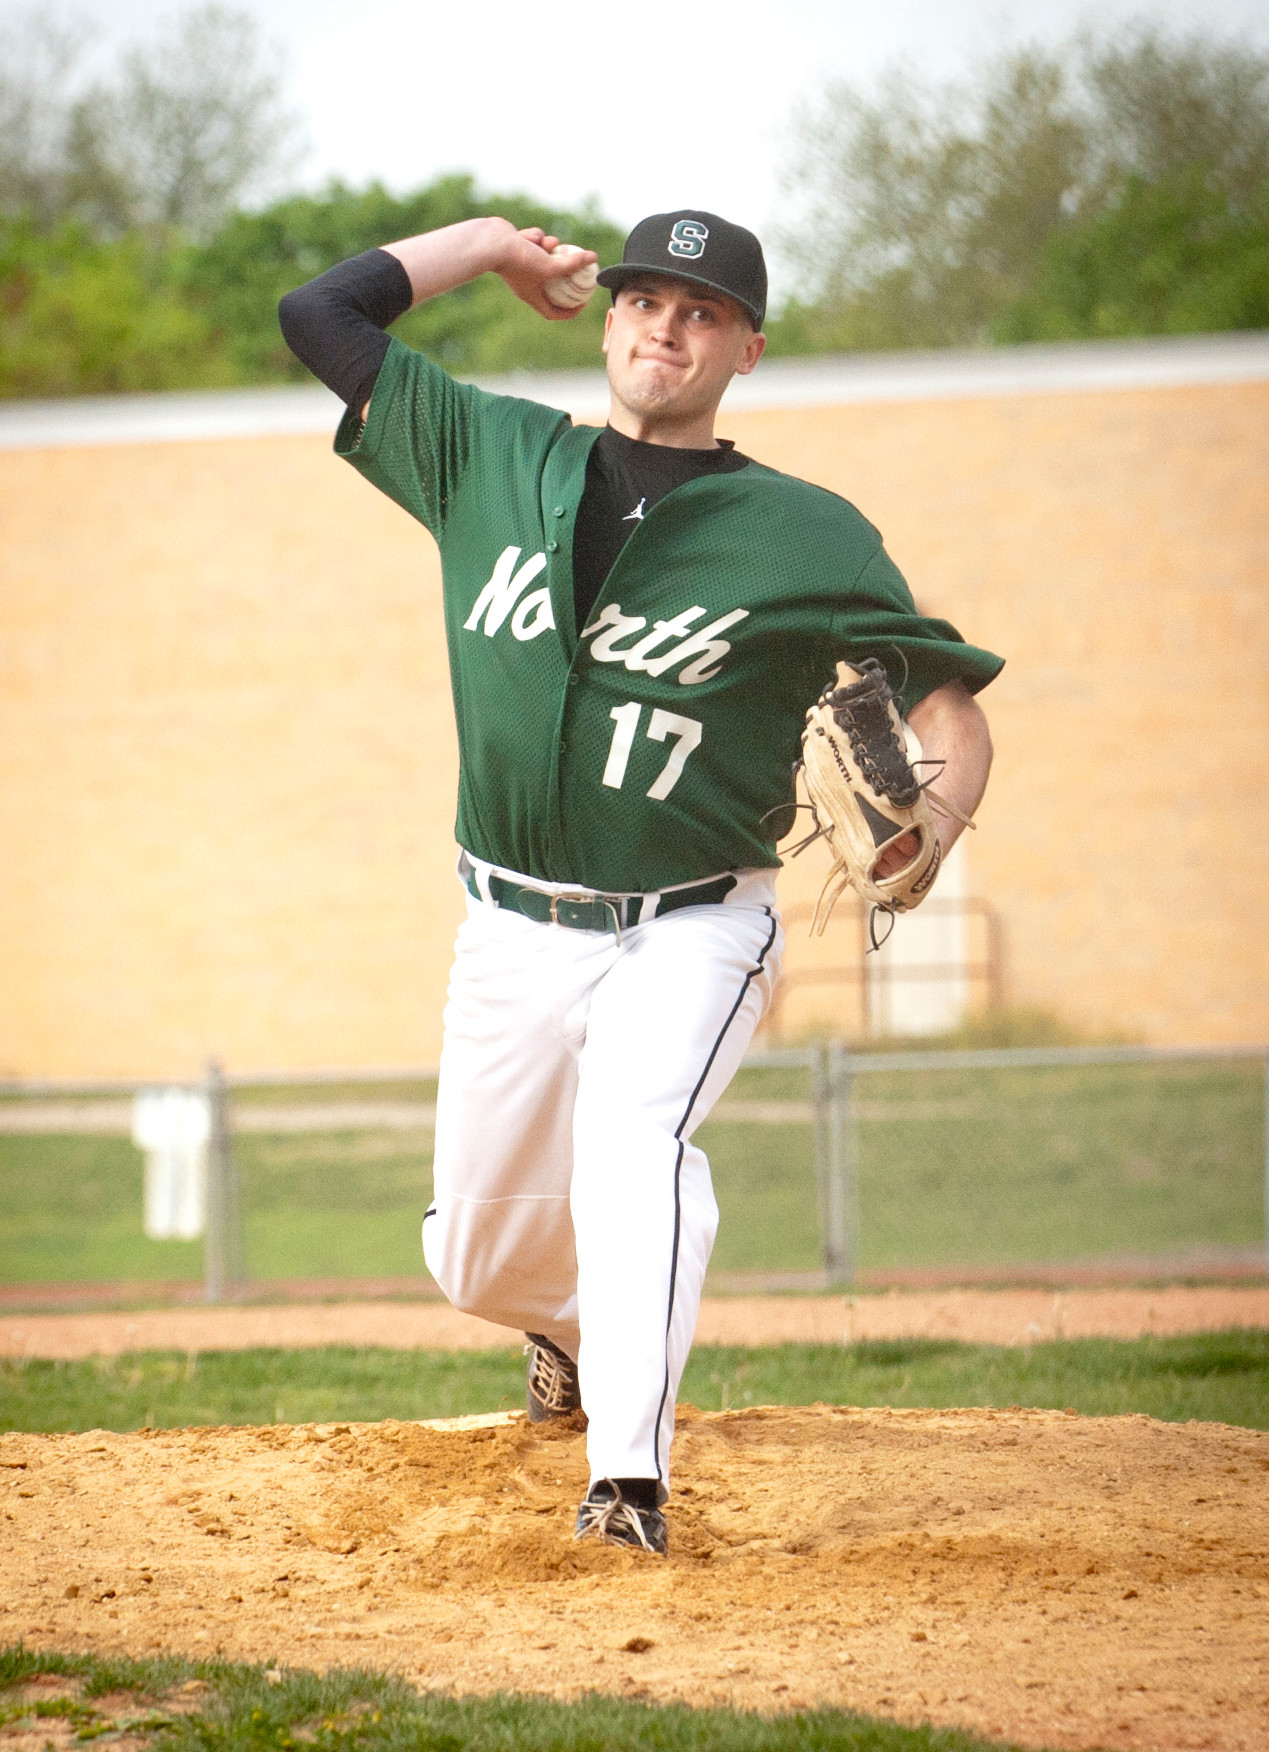 Glen Carey pitched a gem for Valley Stream North in last Monday's playoff win at Valley Stream South.